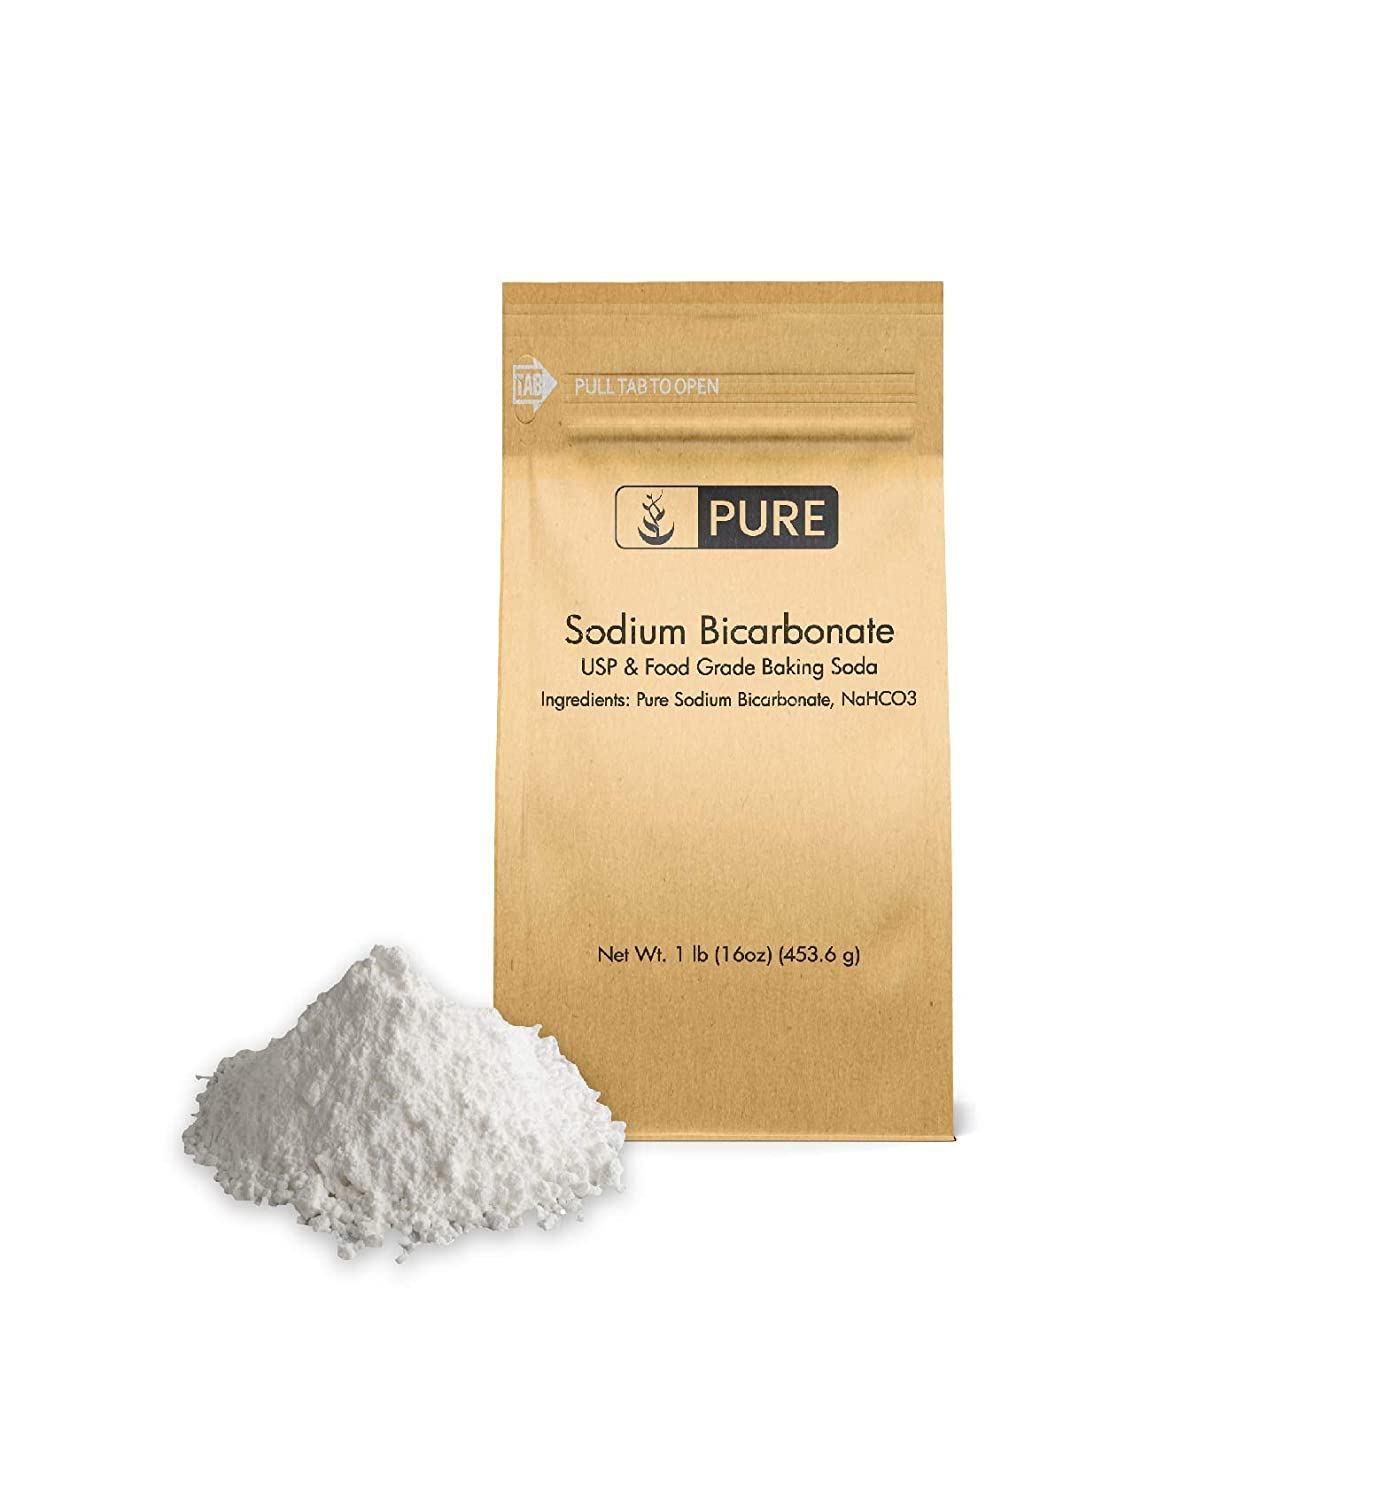 Sodium Bicarbonate (Baking Soda) (1 lb.), Environmentally-Friendly Packaging, Pure, Food & USP Grade by Pure Organic Ingredients